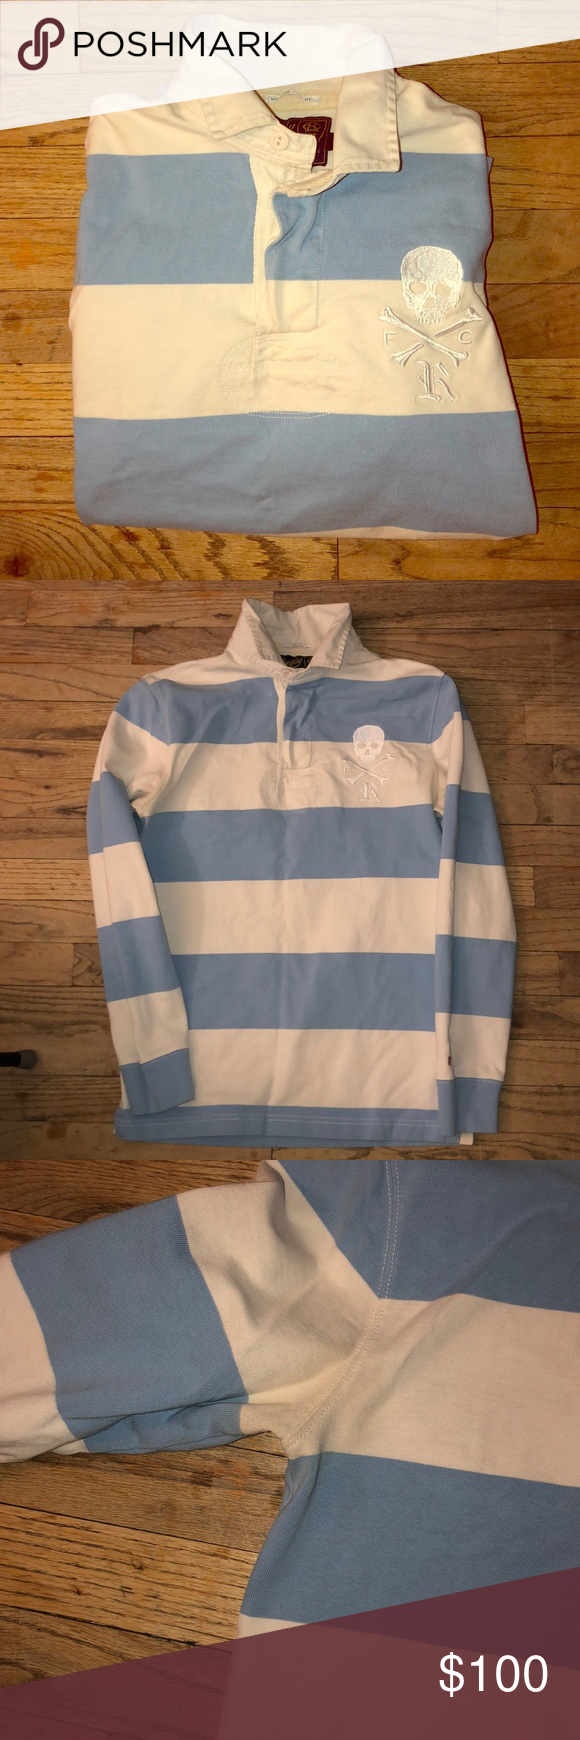 Rugby Polo Ralph Lauren Shirt Good condition had since 2008. Very vintage slim fit polo shirt. Color...